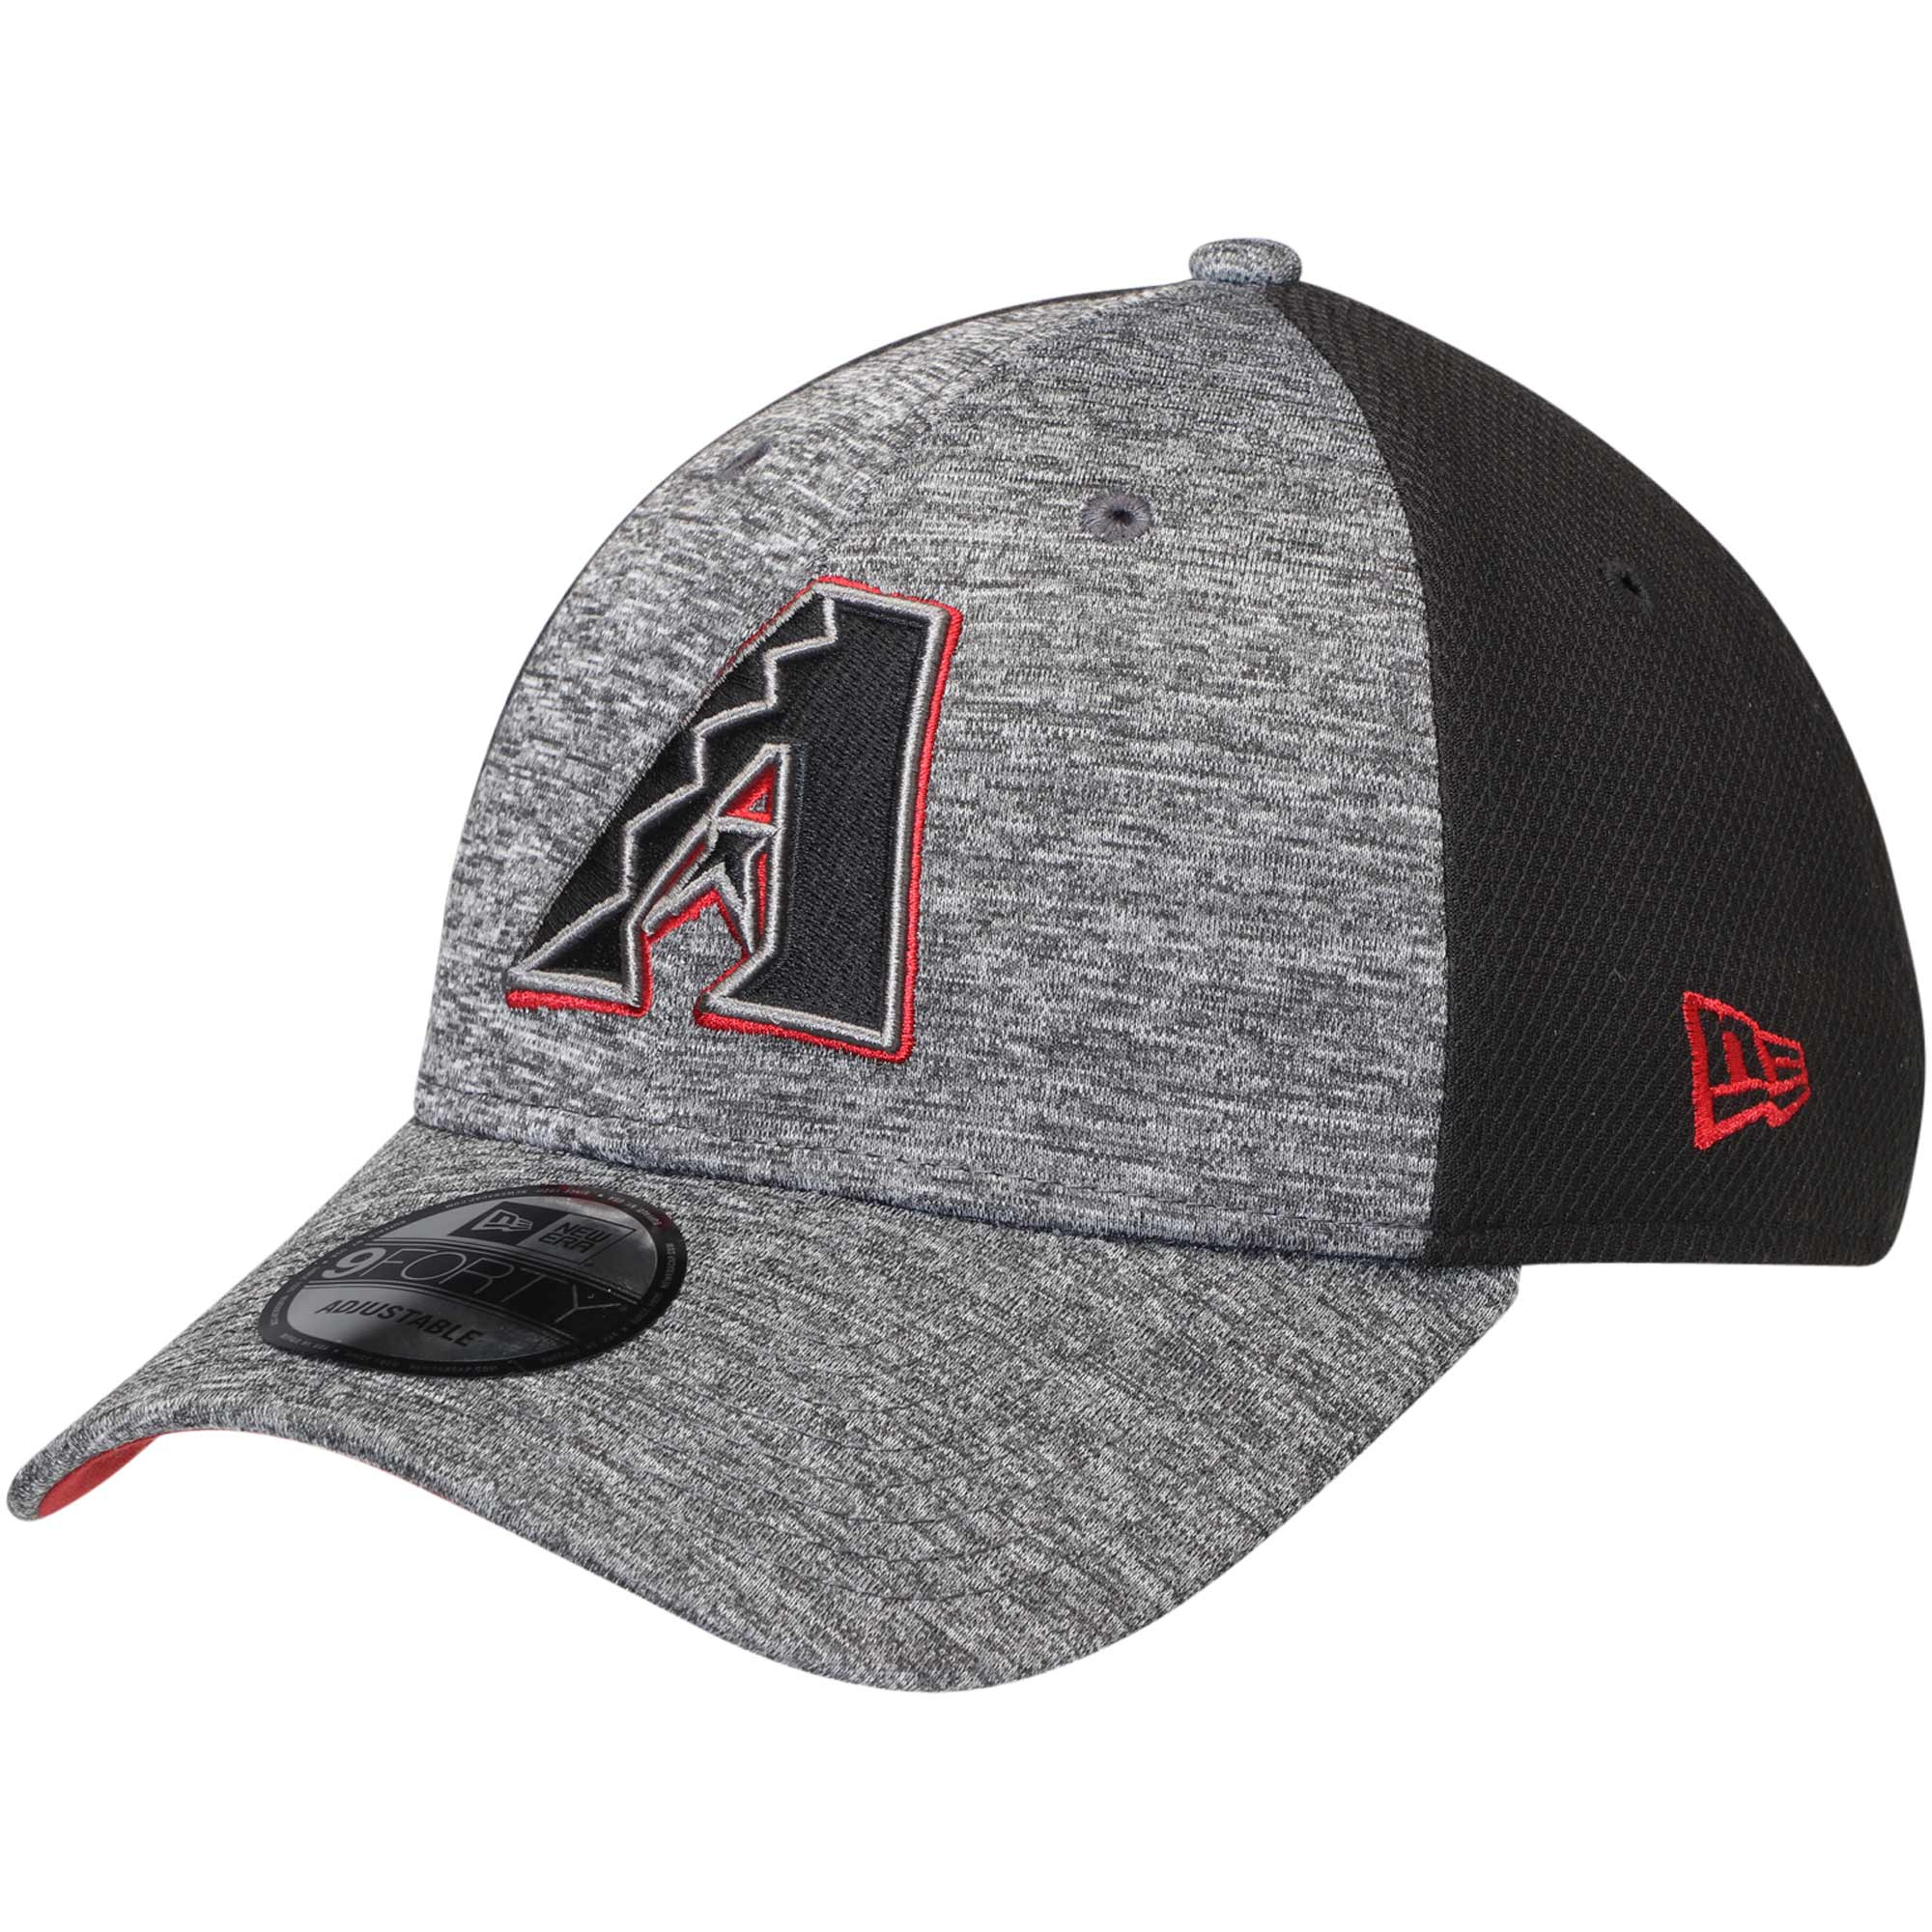 Arizona Diamondbacks New Era Shadowed Team Logo 9FORTY Adjustable Hat - Heathered Gray/Black - OSFA